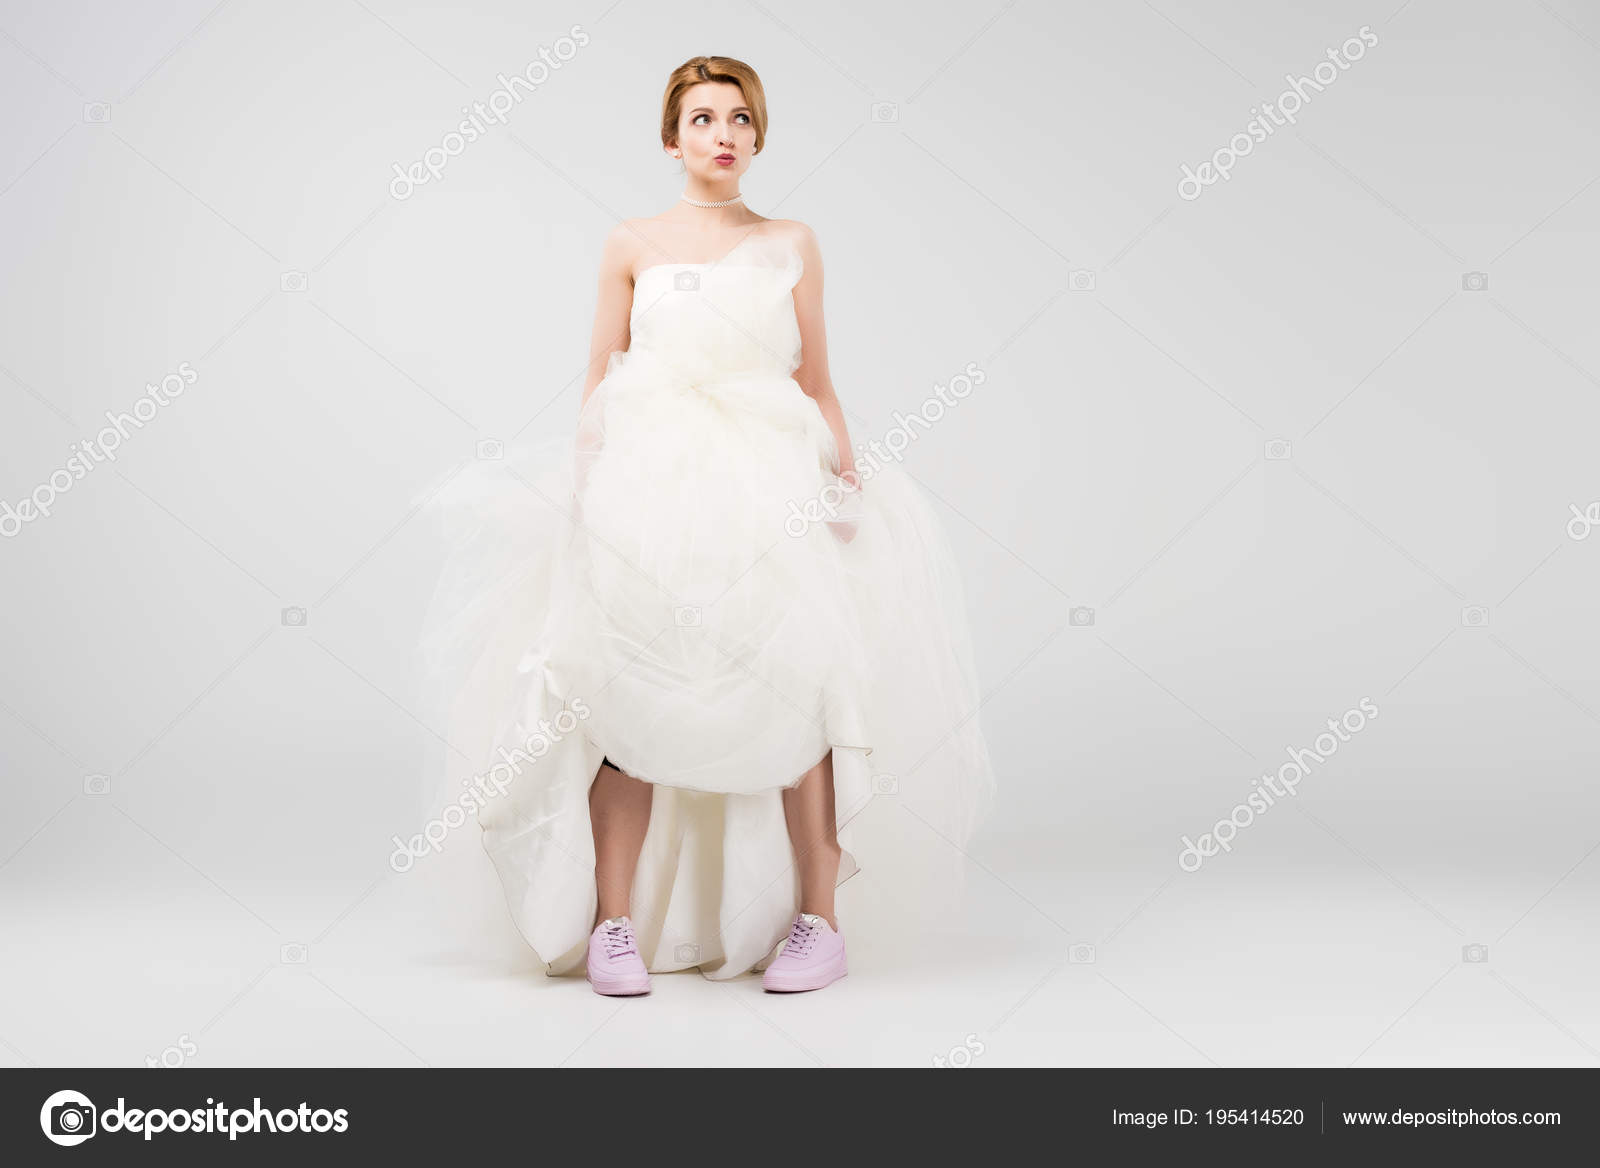 Happy Bride White Wedding Dress Pink Sneakers Isolated Grey Feminism ...